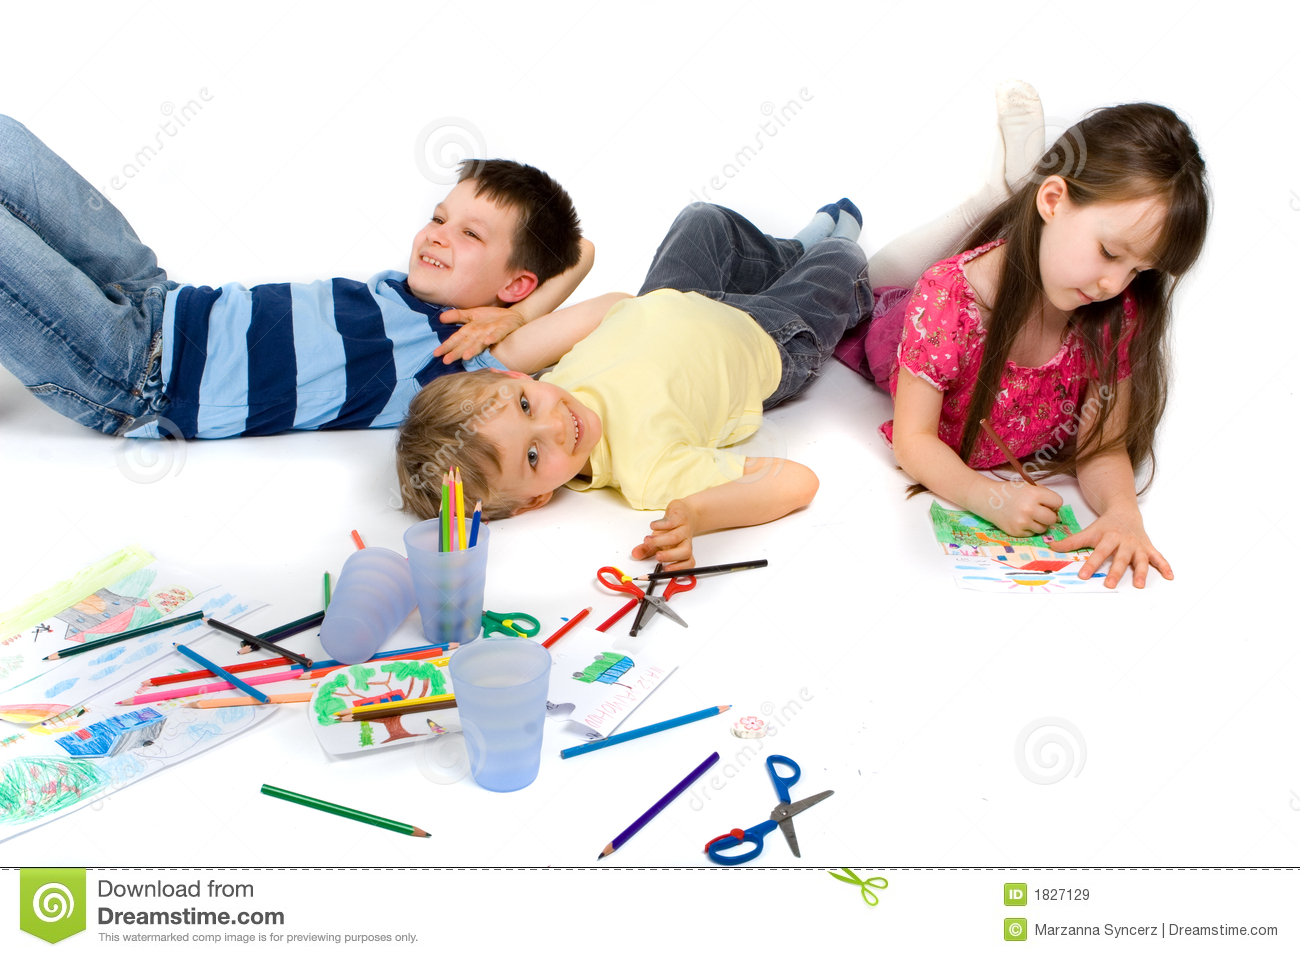 Children Happily Playing on Floor